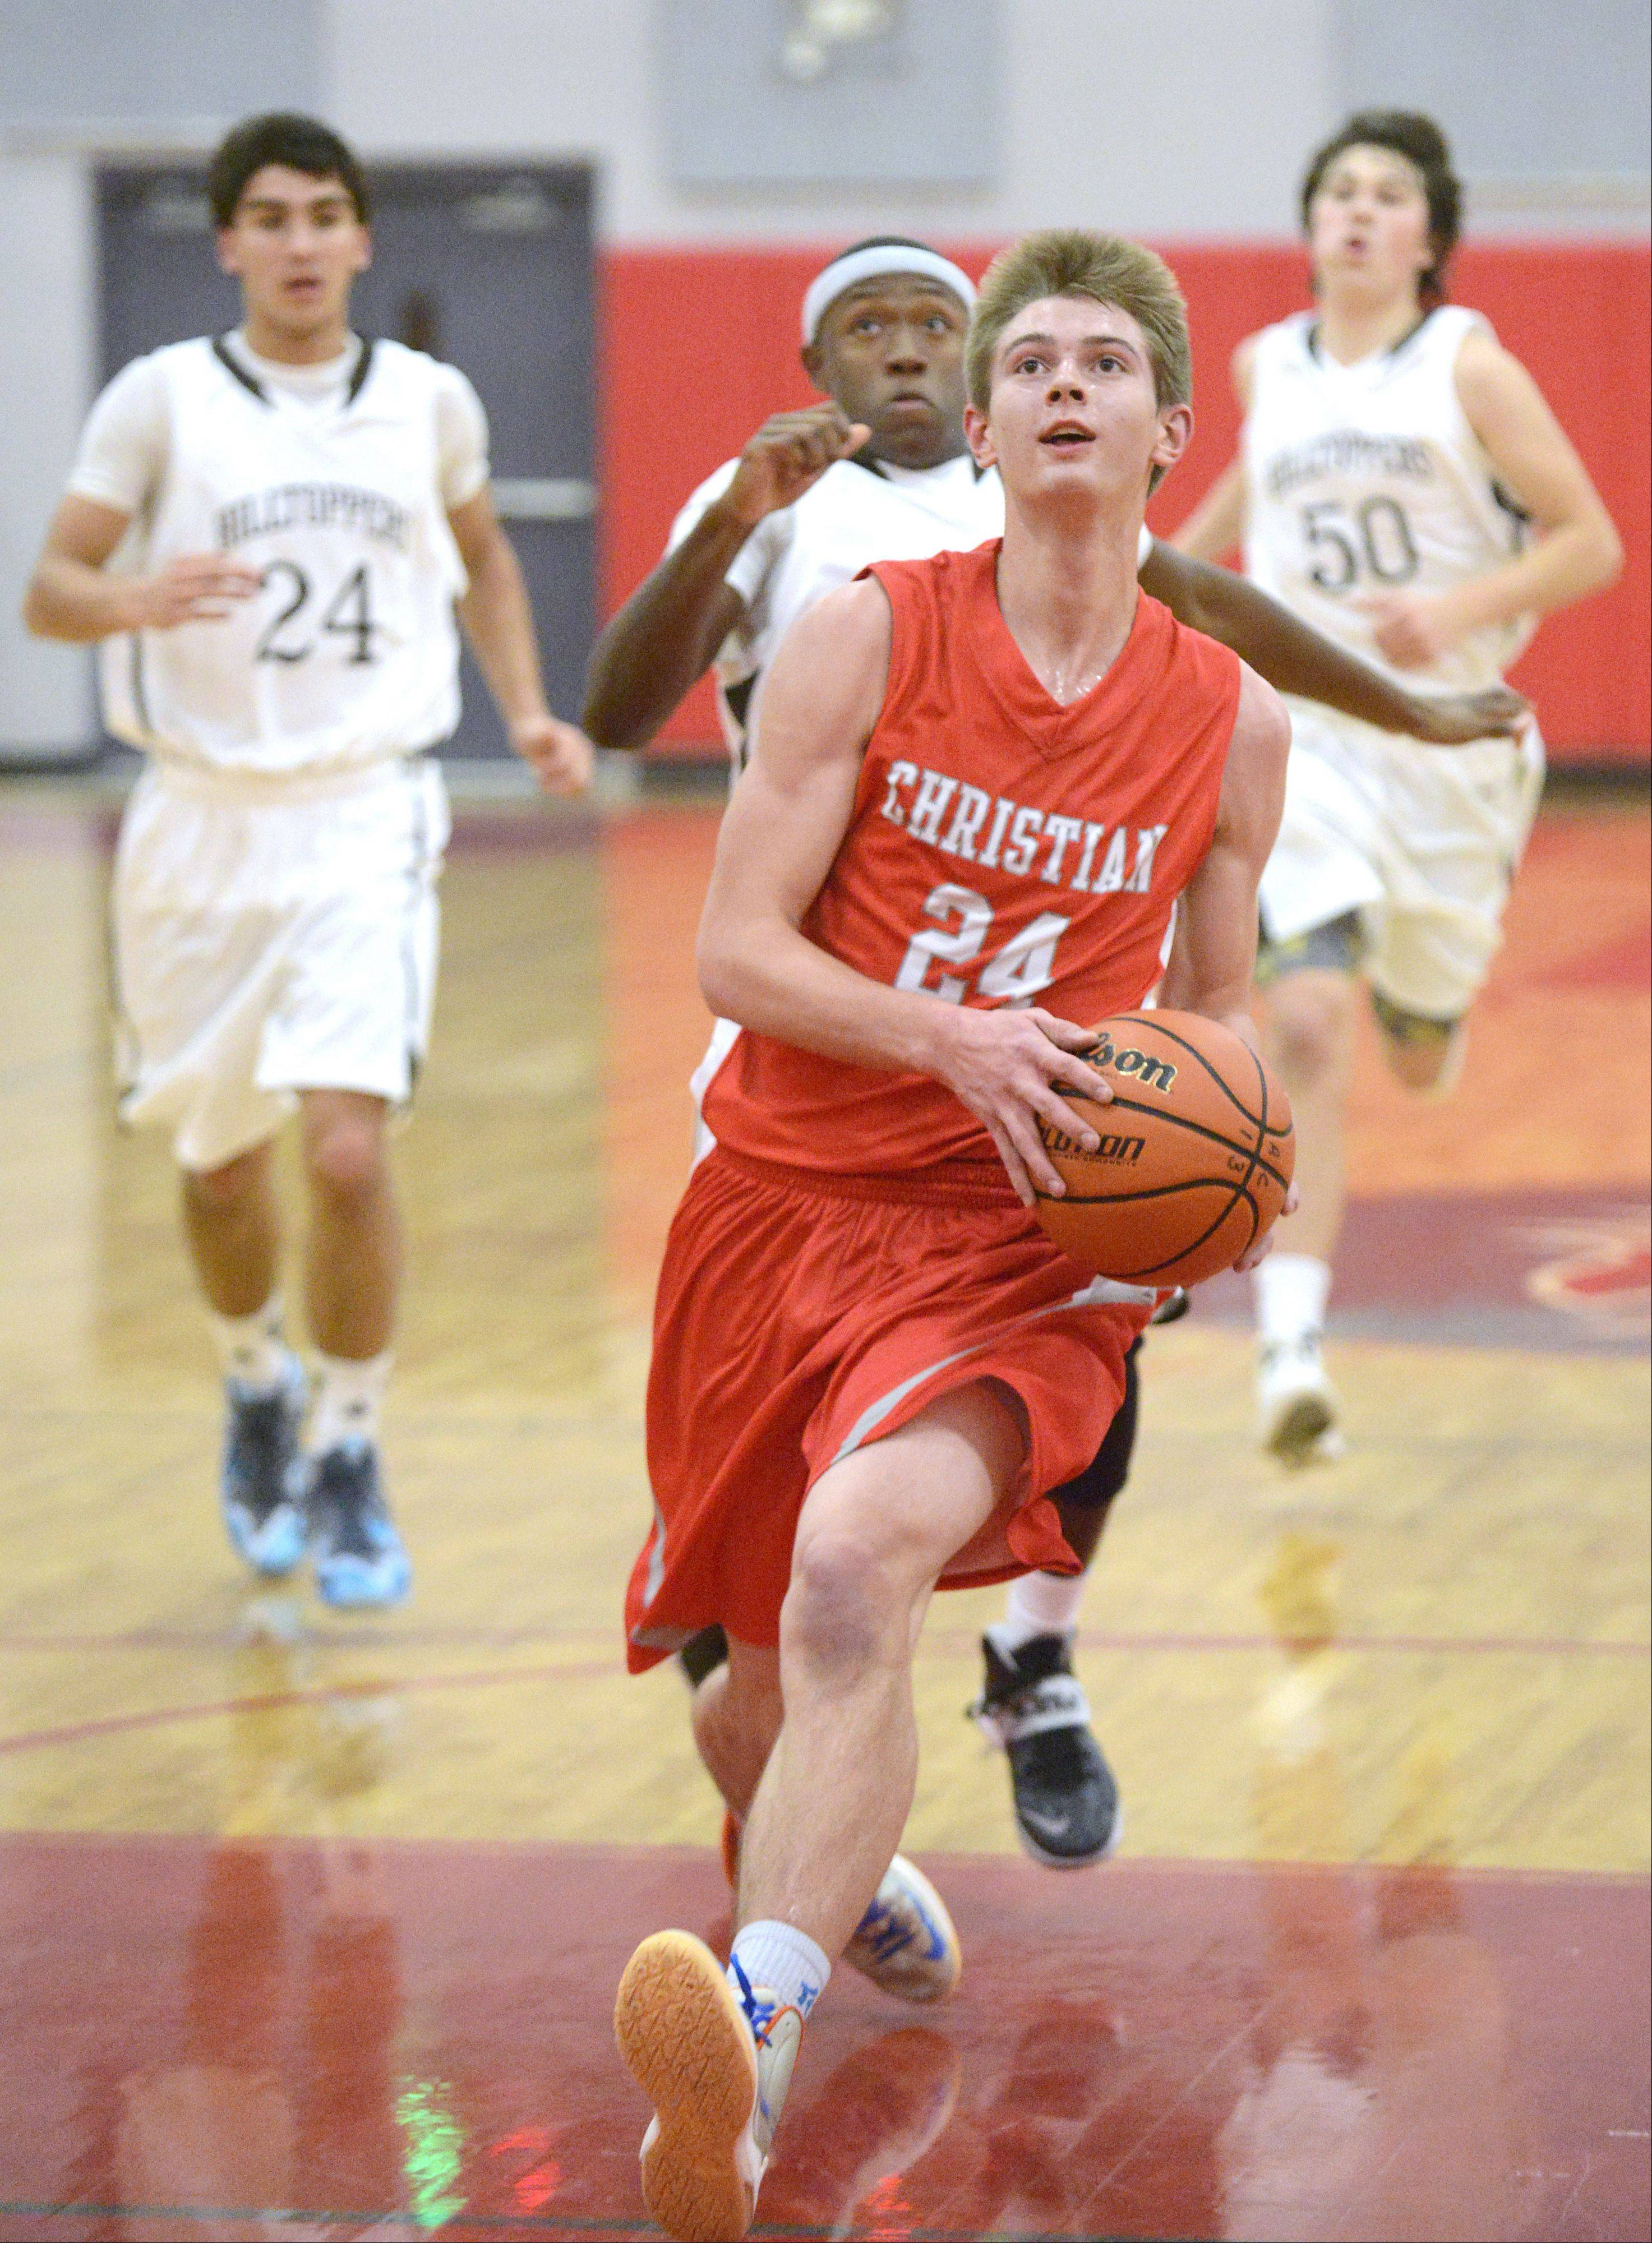 Aurora Christian's Wes Wolfe sprints for the hoop on a clear path in the second quarter.